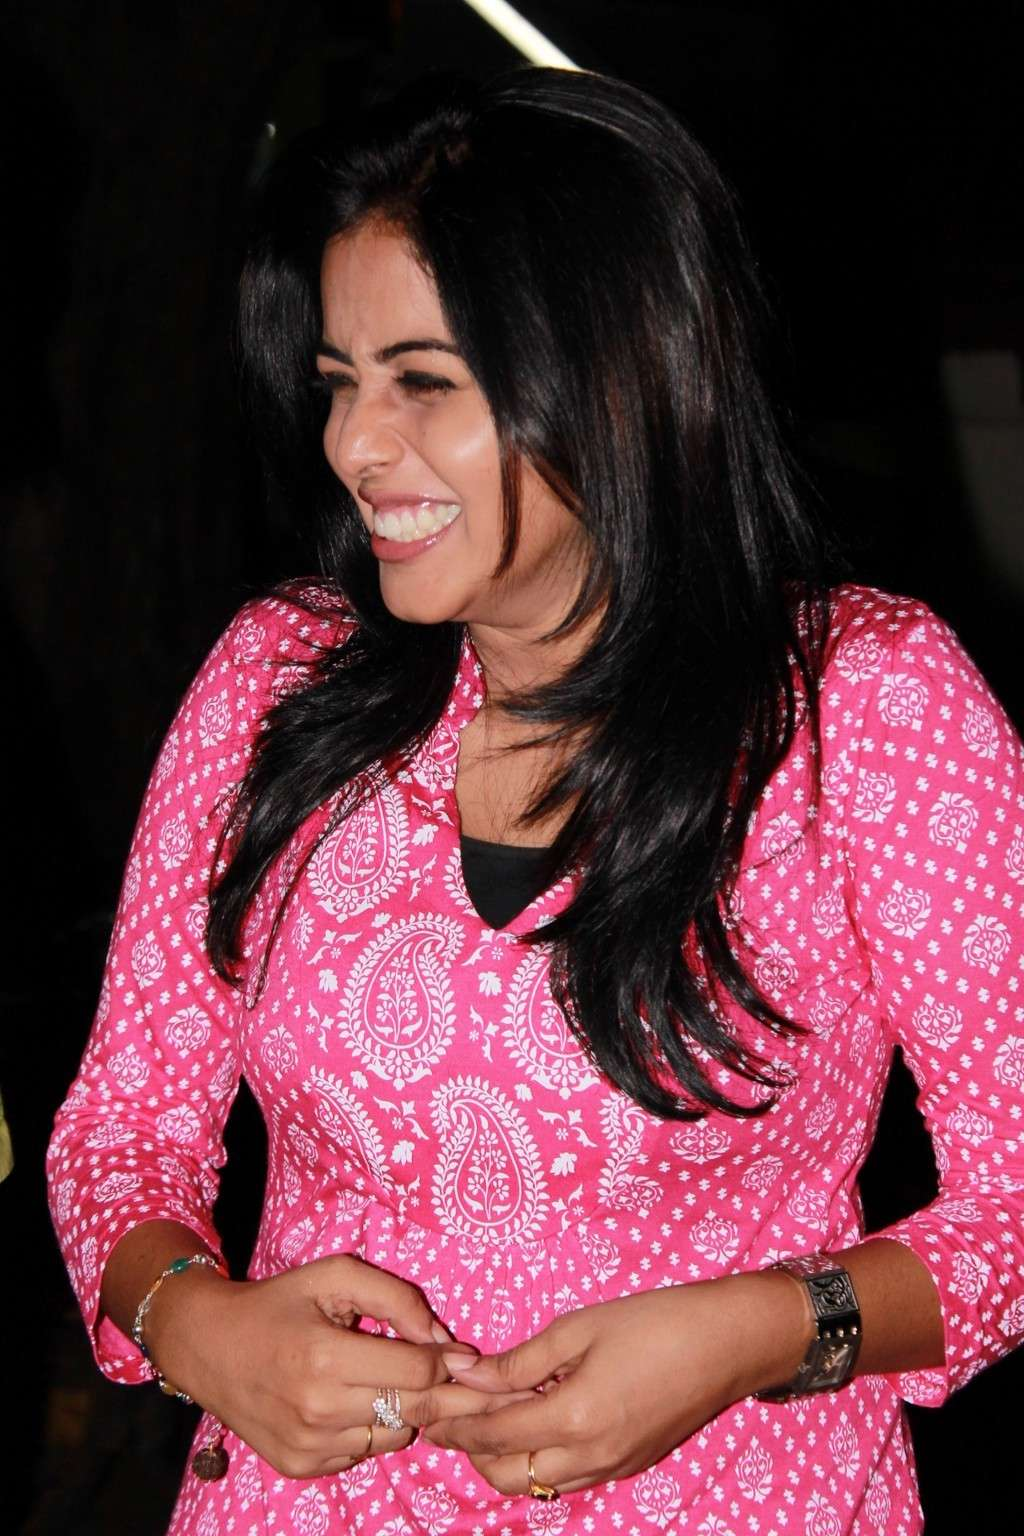 Poorna Bright in Pink Top Poorna16